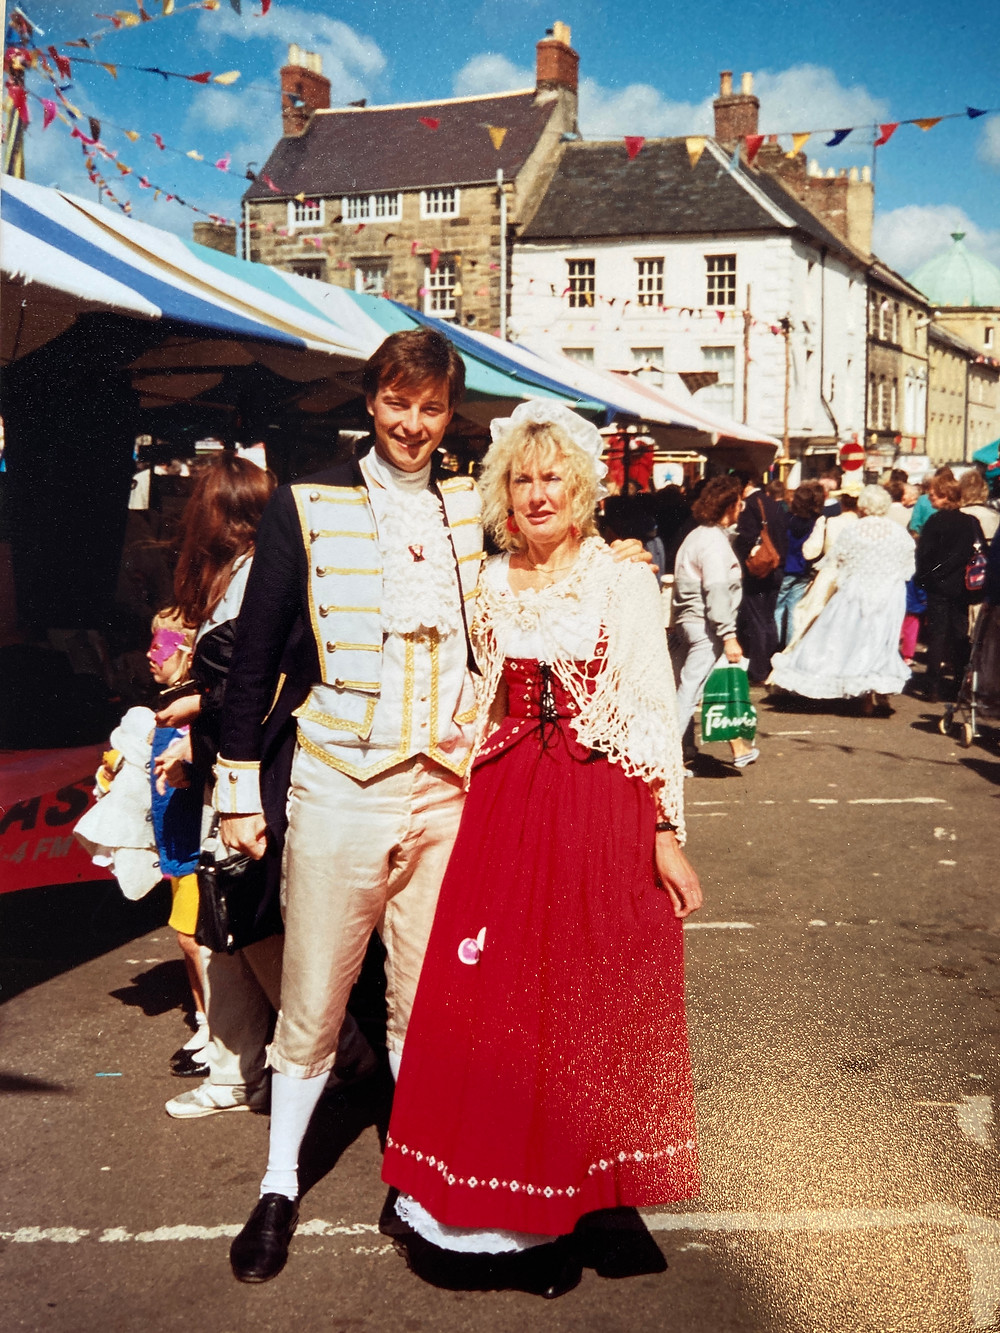 As well as reporting on community life such as the Alnwick Fair I was on the committee